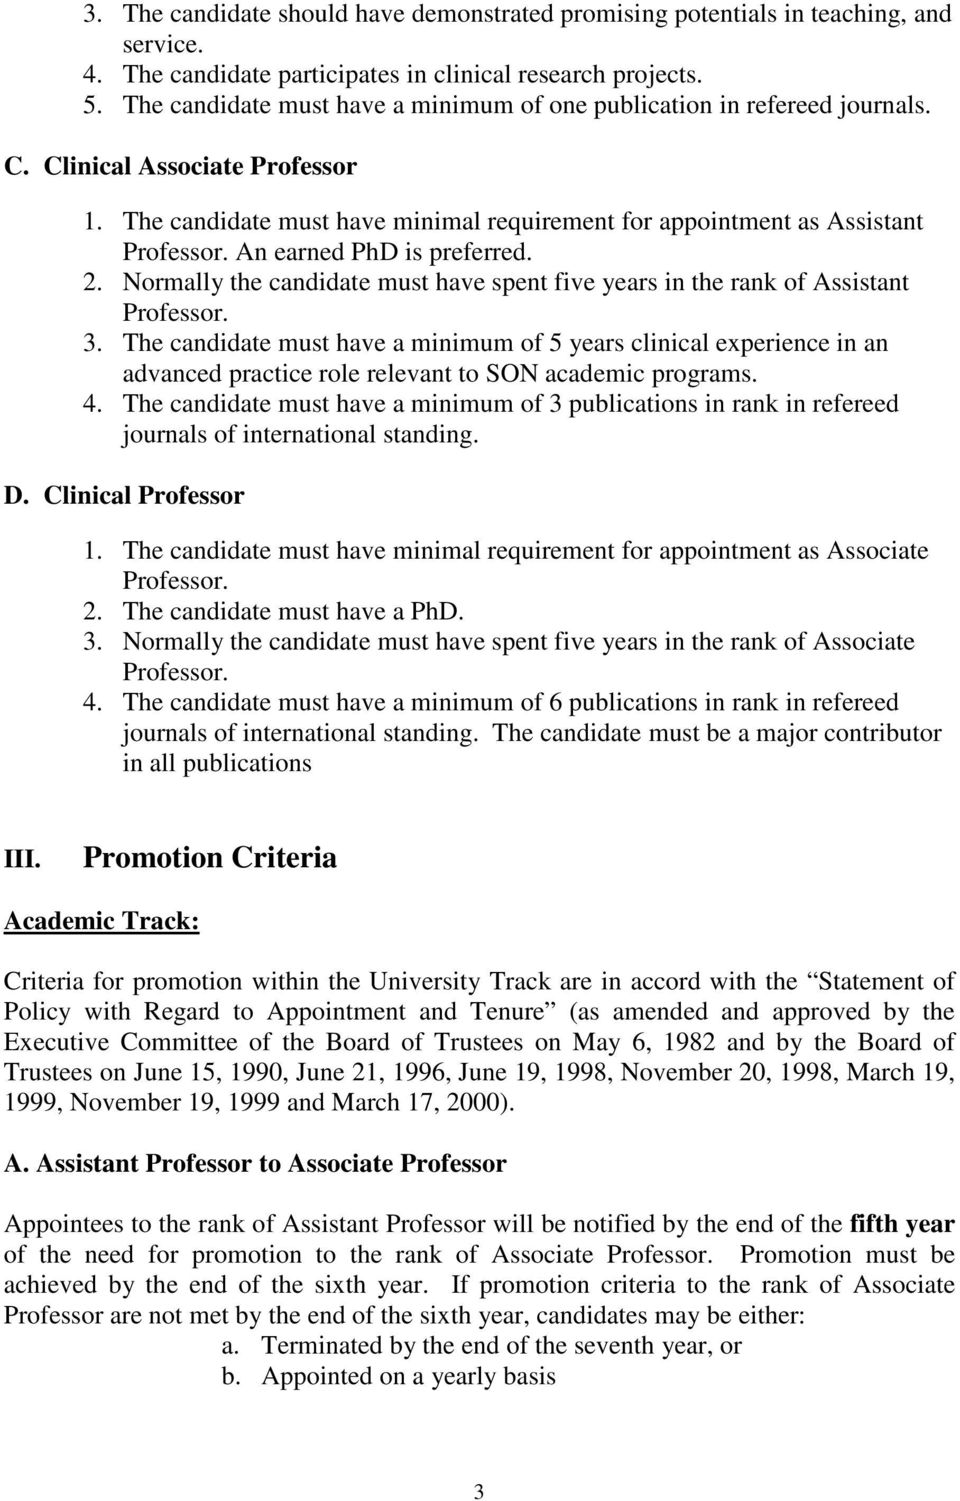 An earned PhD is preferred. 2. Normally the candidate must have spent five years in the rank of Assistant Professor. 3.